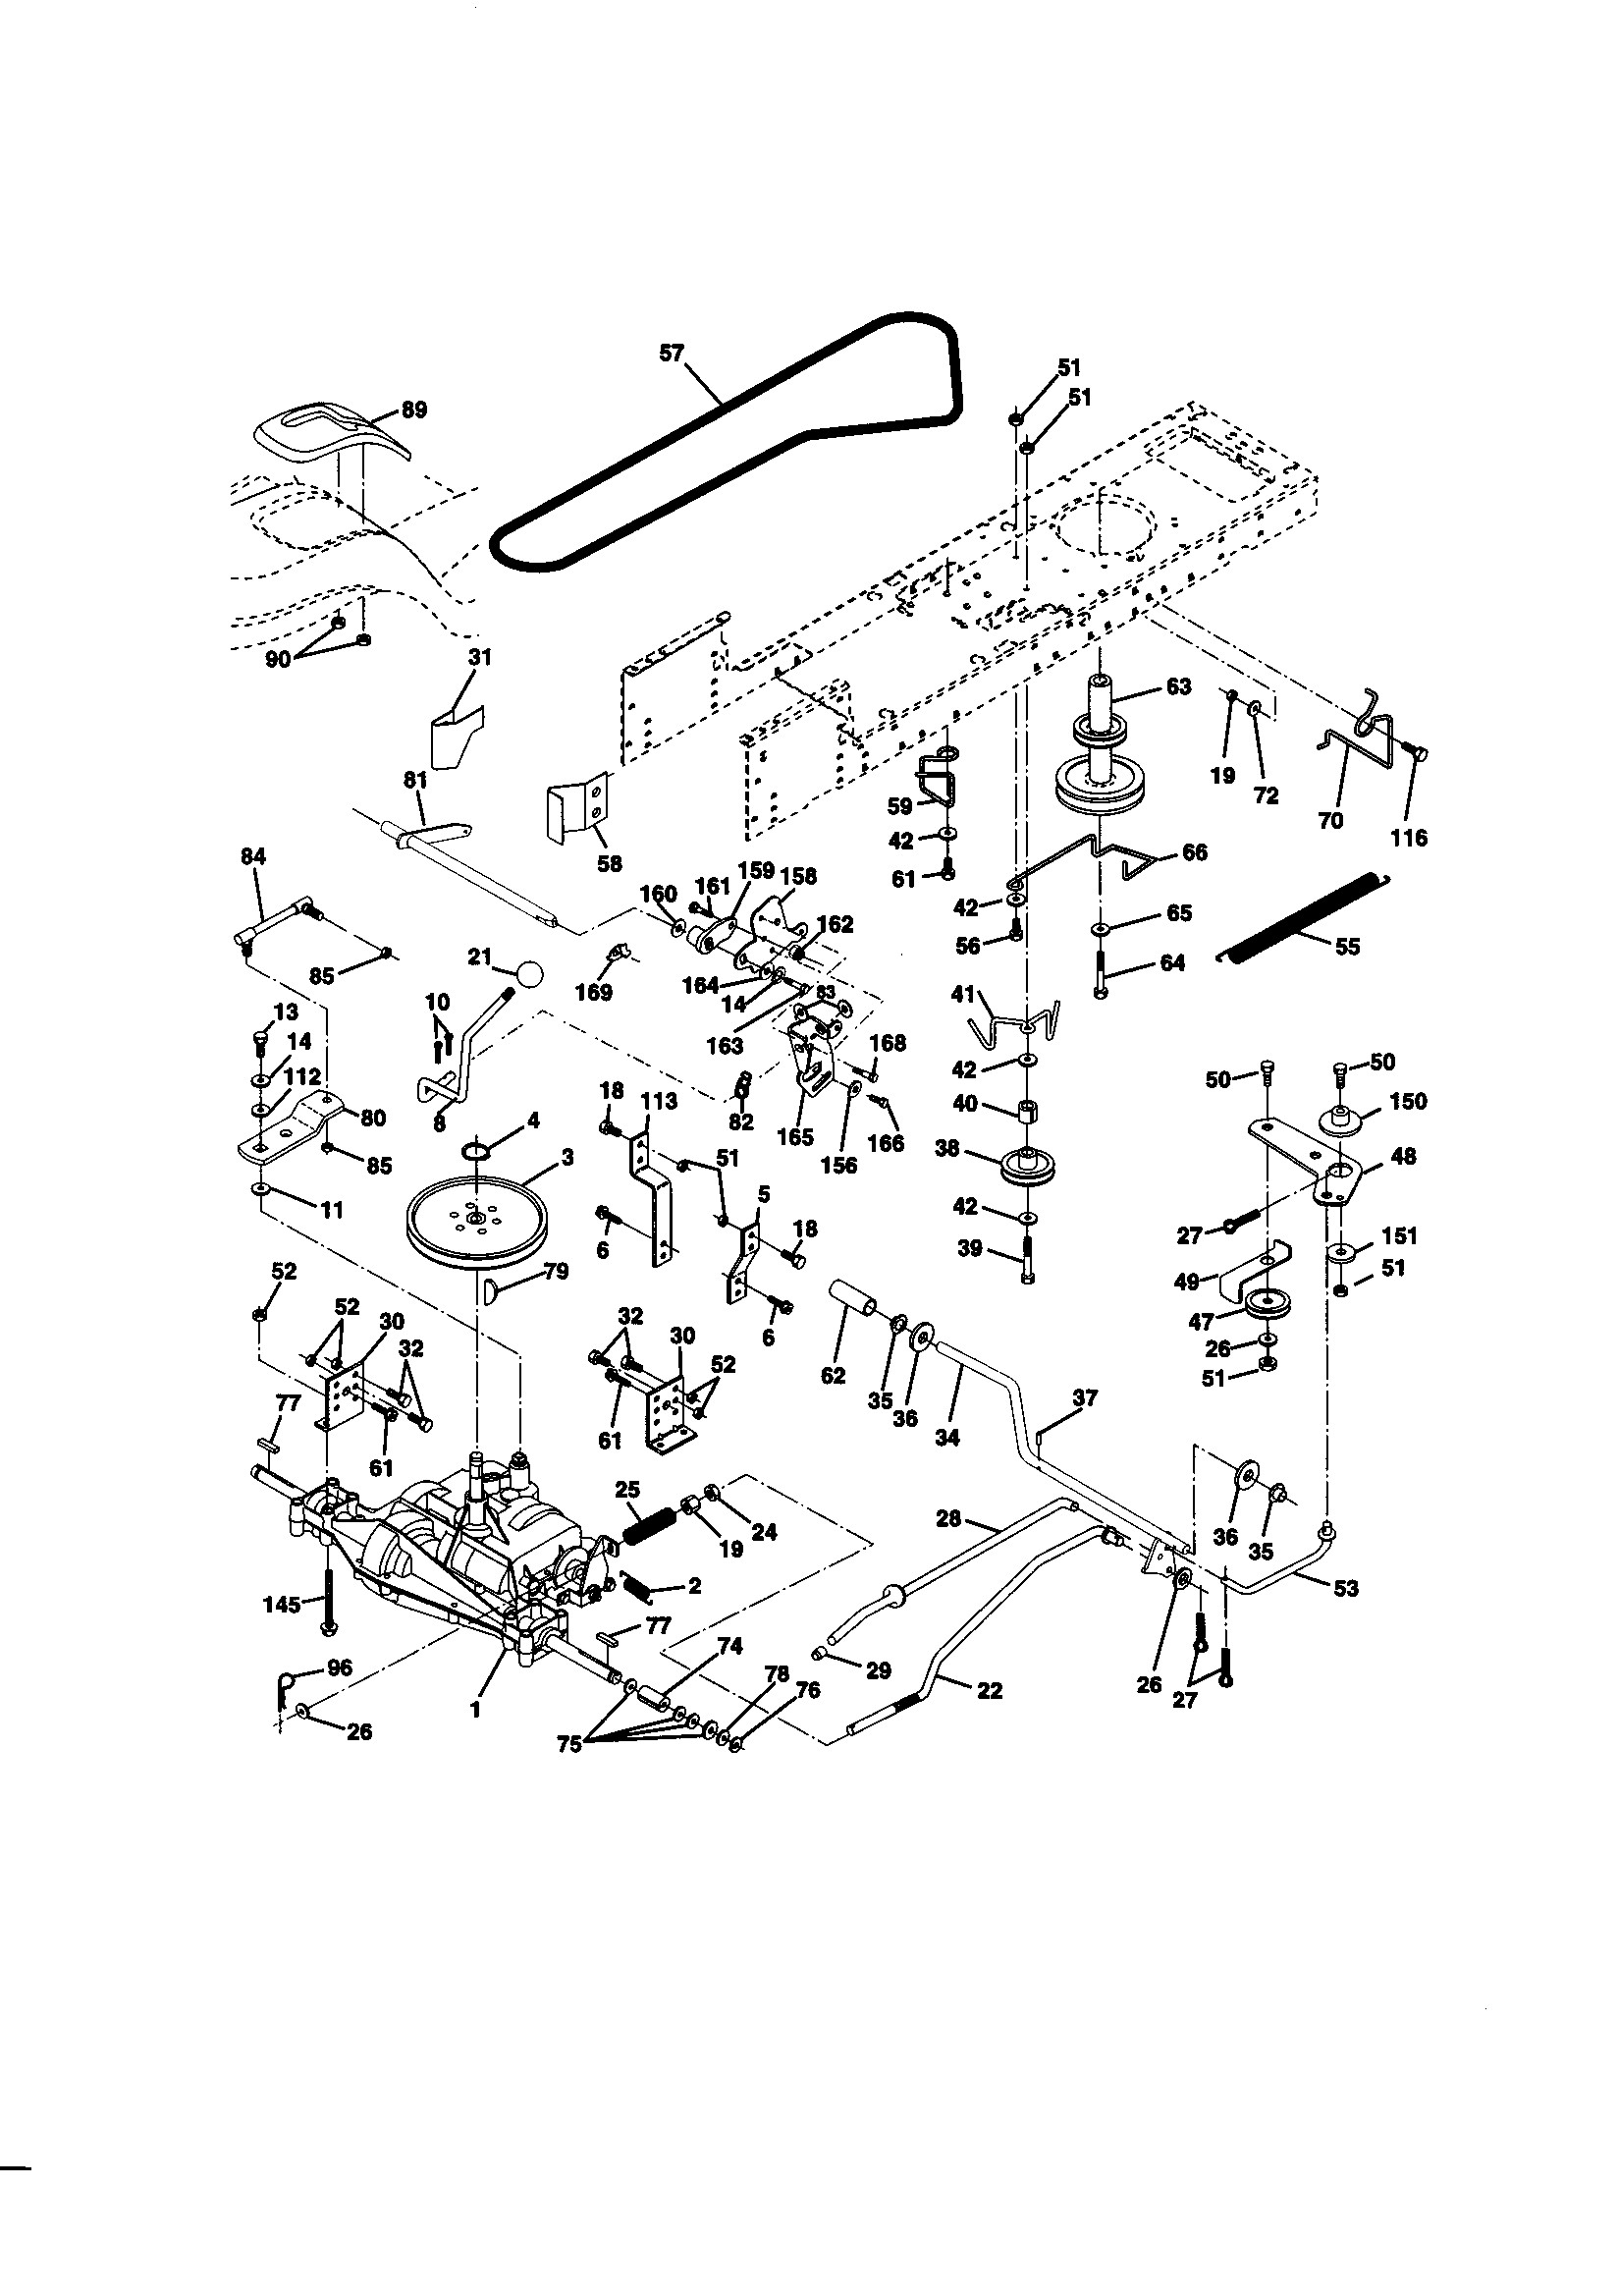 Craftsman Lawn Mower Engine Parts Diagram Craftsman 19 5 Hp Electric Start 42 Lawn Tractor Parts